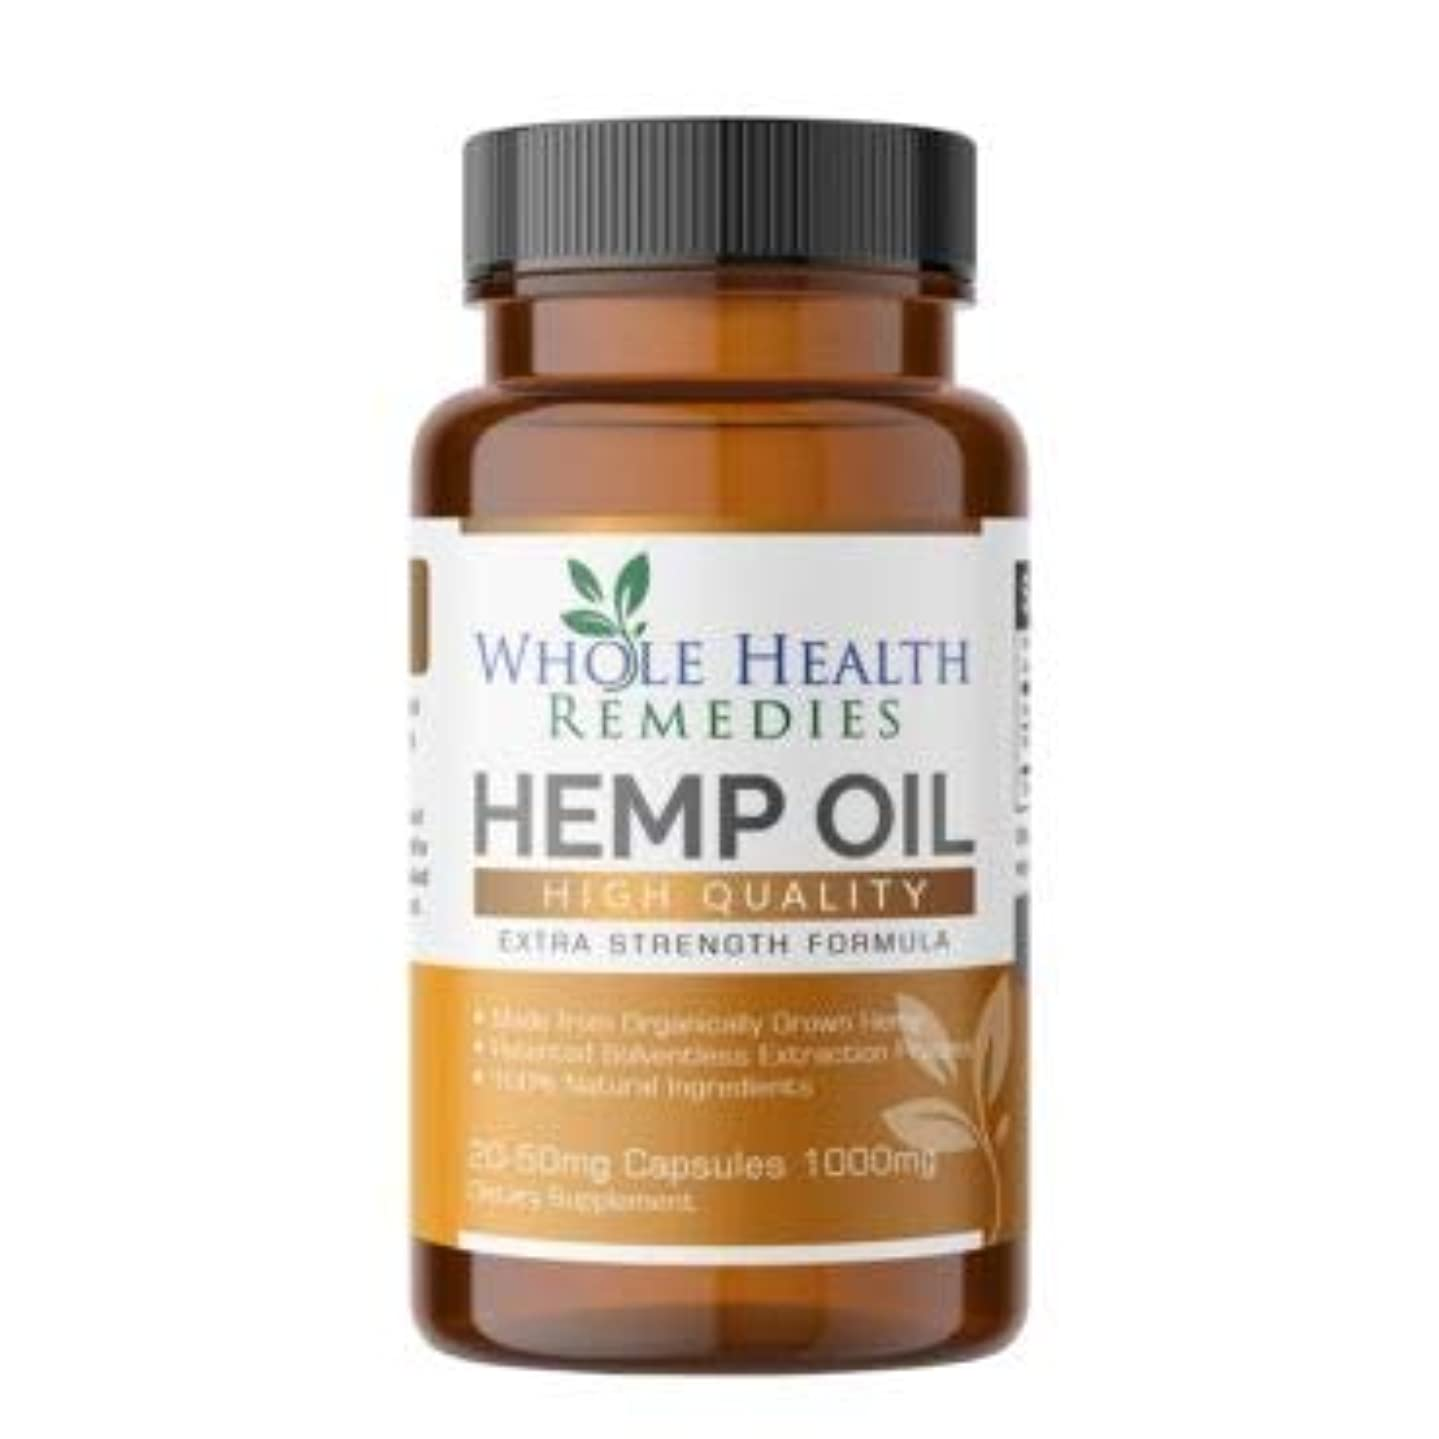 Hemp Oil Capsules – 1000 MG of Pure Hemp Extract Per Bottle – for Pain, Stress, Anxiety Relief, Natural Sleep aid & Mood Support - Made in The USA, Organically Grown and Non-GMO & Patented Tech